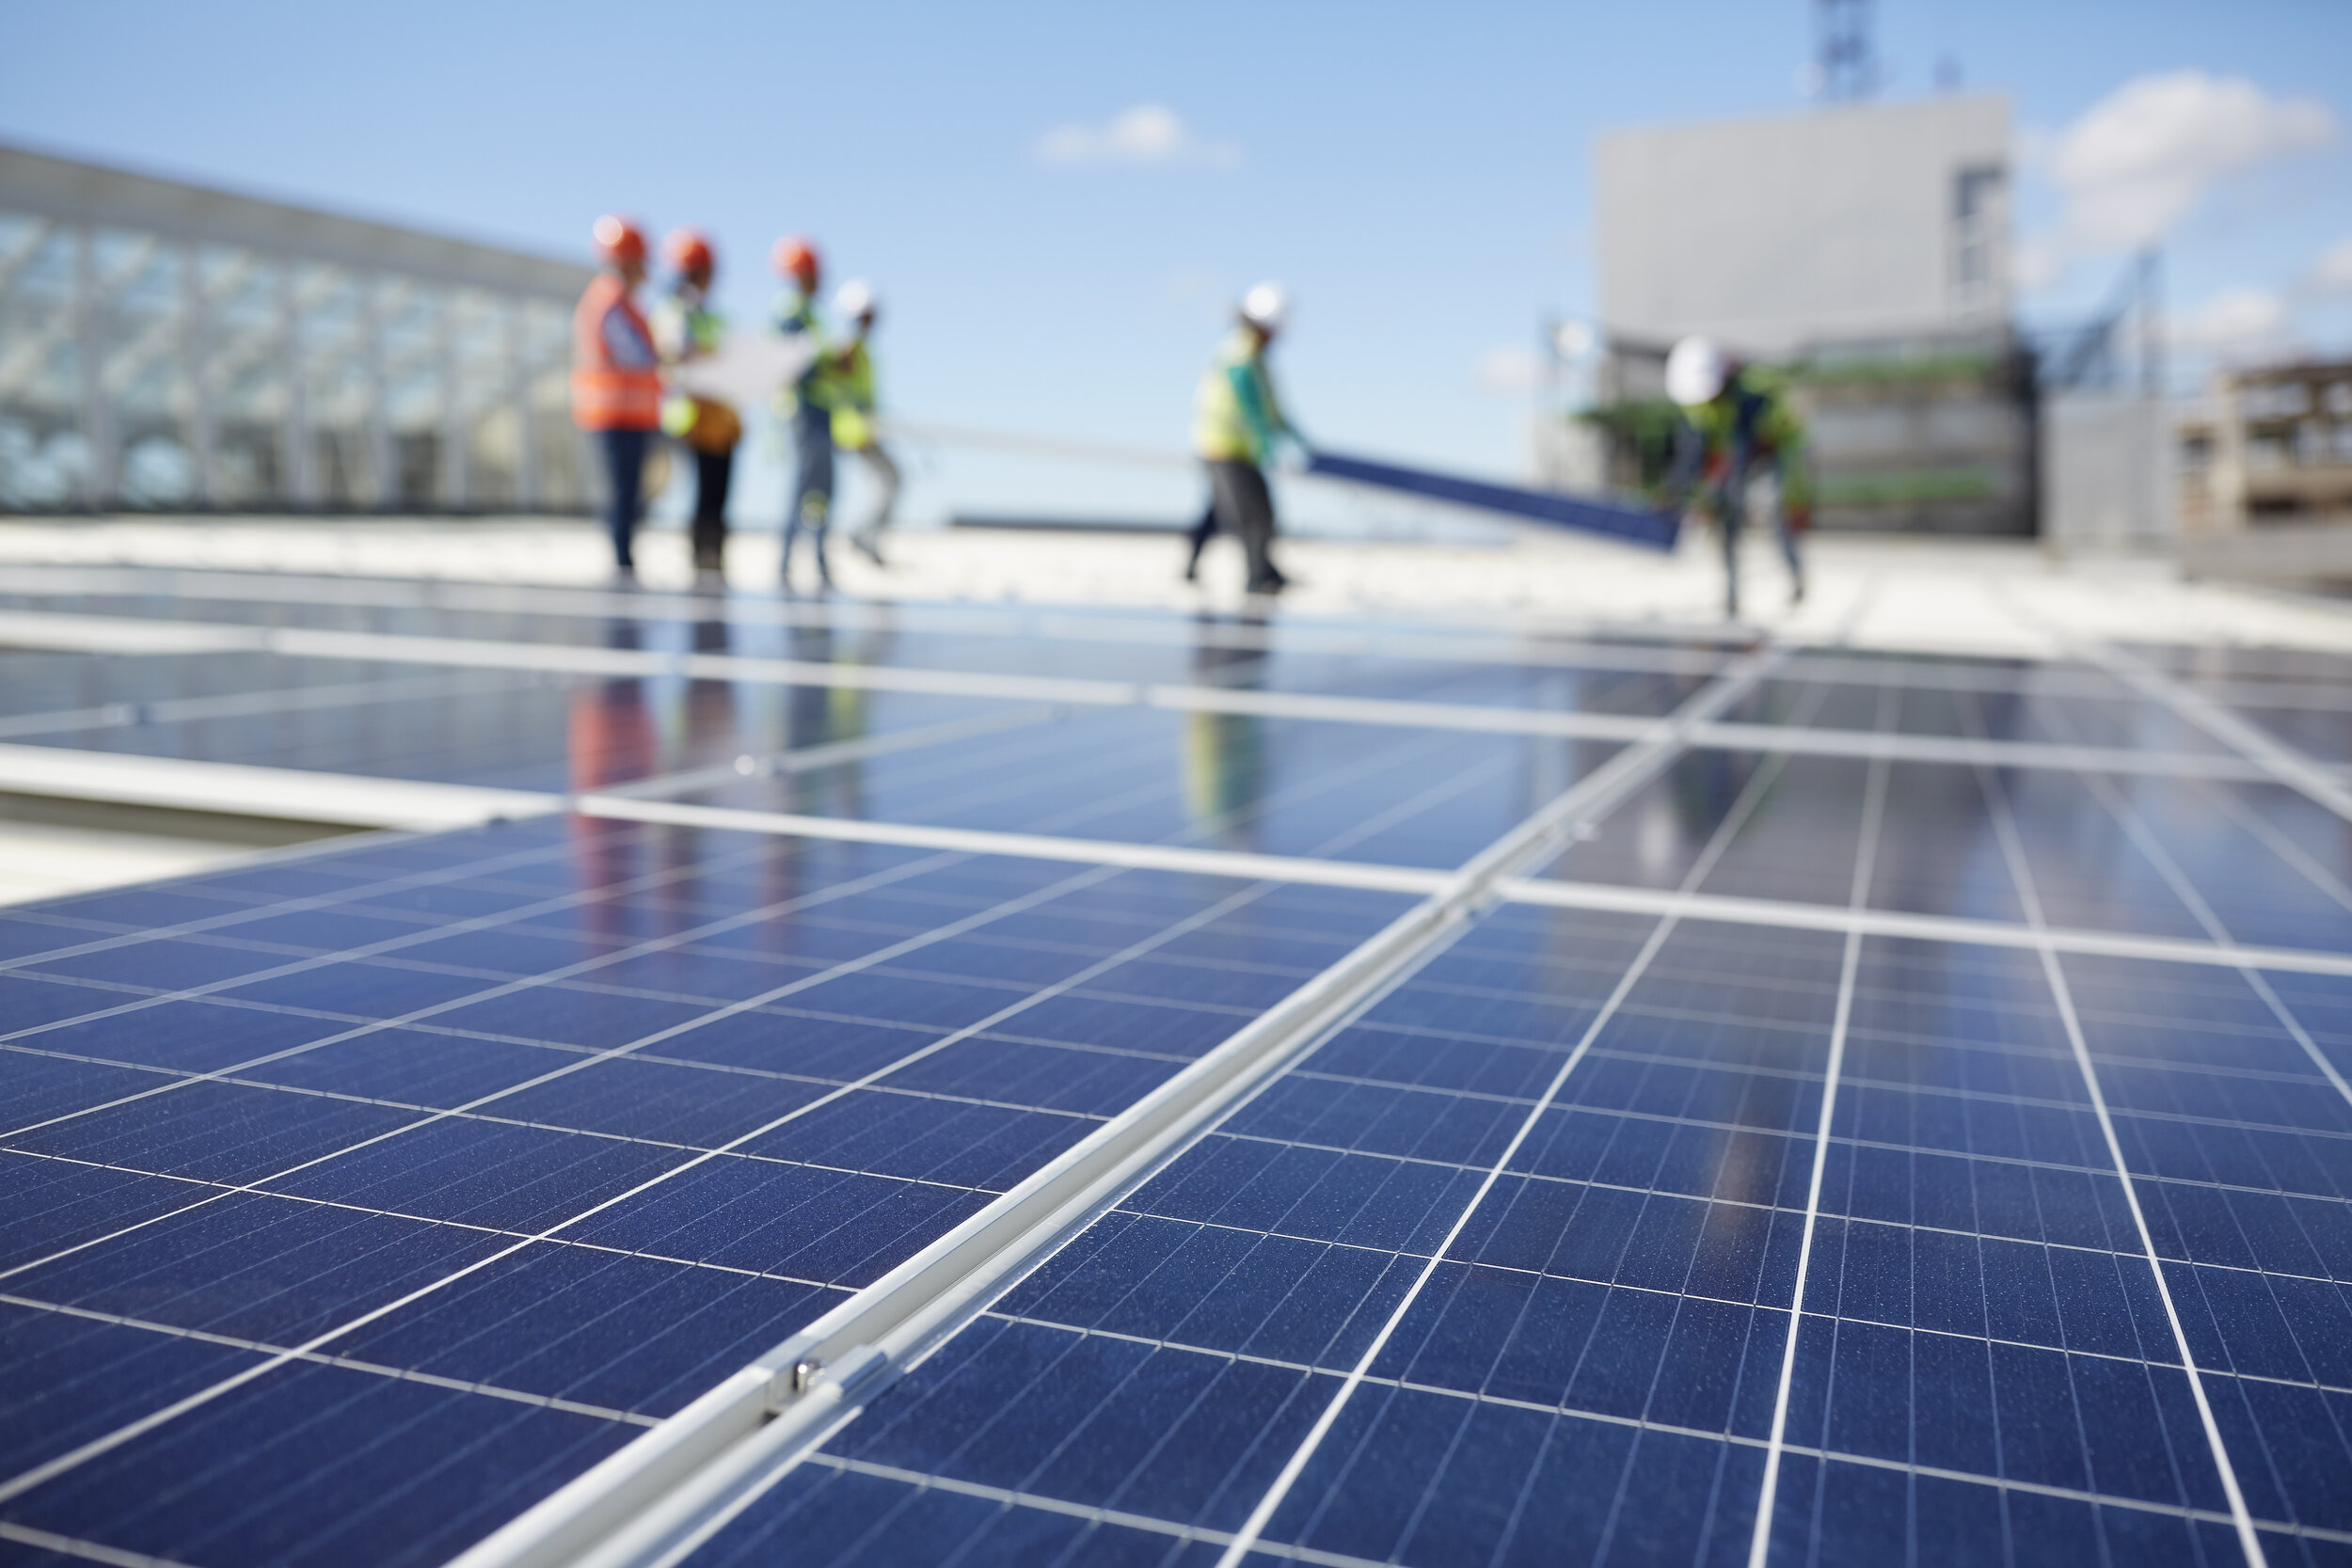 Organizing a high ambition coalition for net-zero carbon targets -